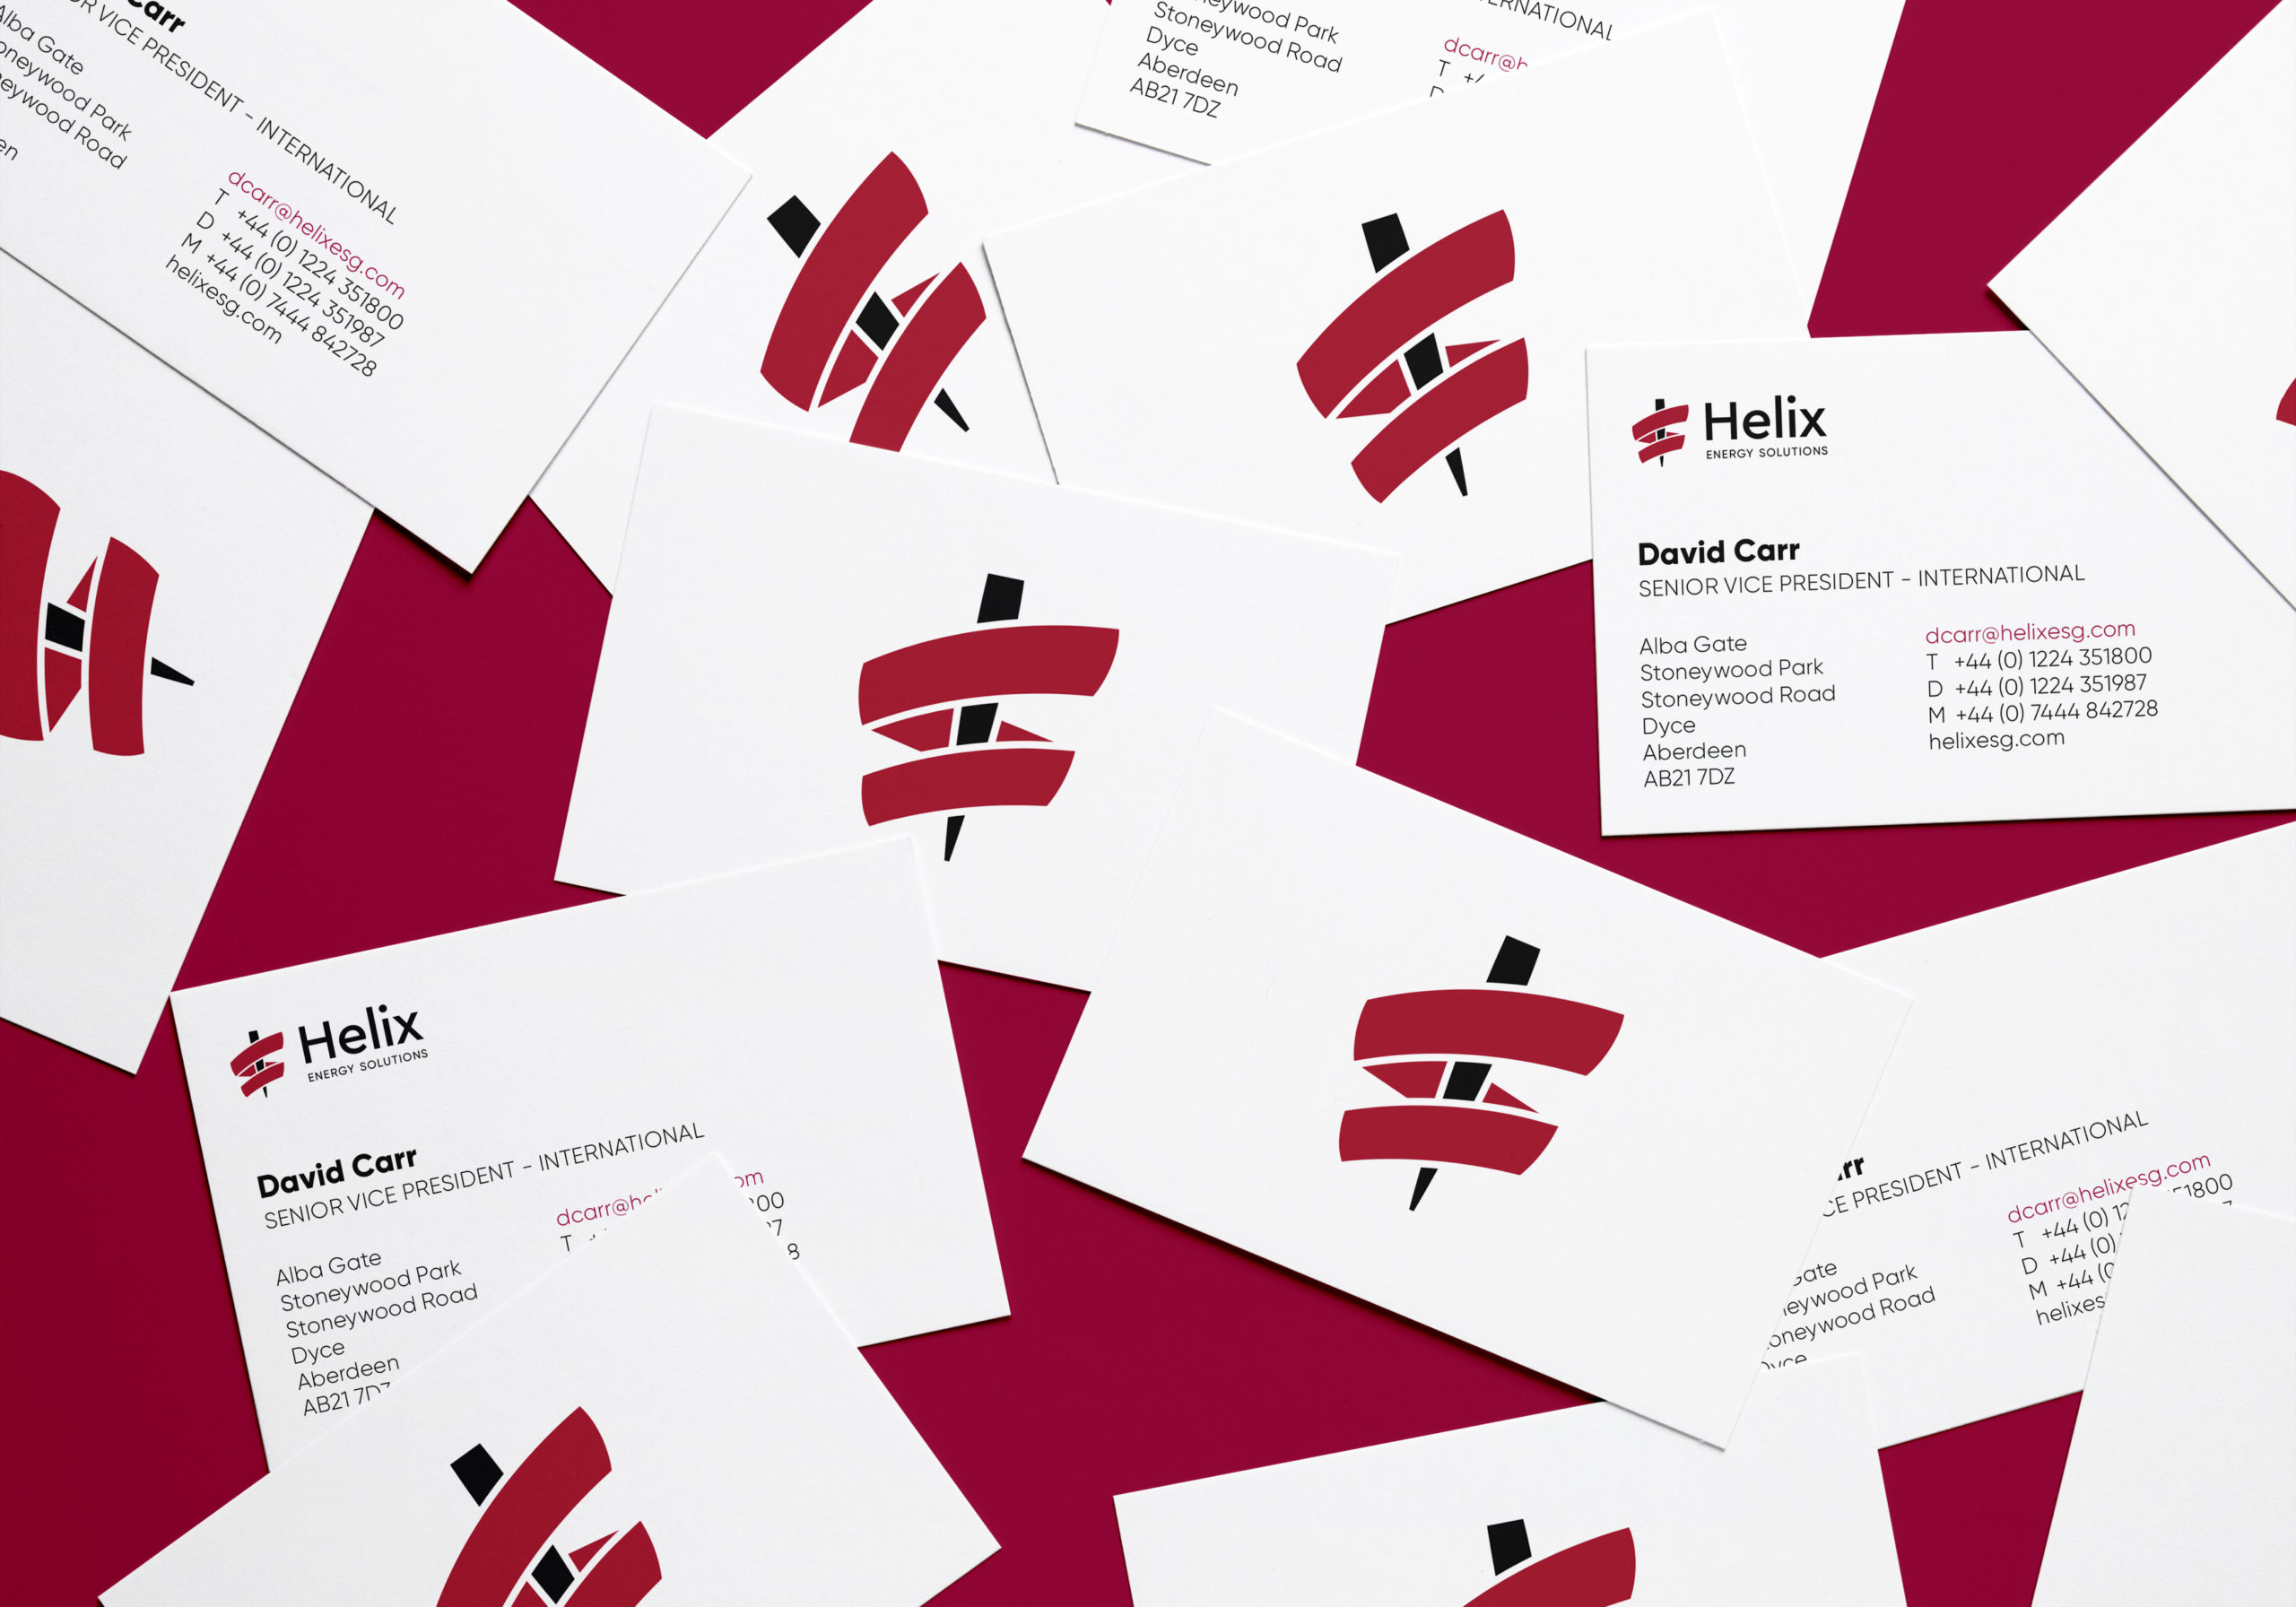 Helix Energy Solutions business cards